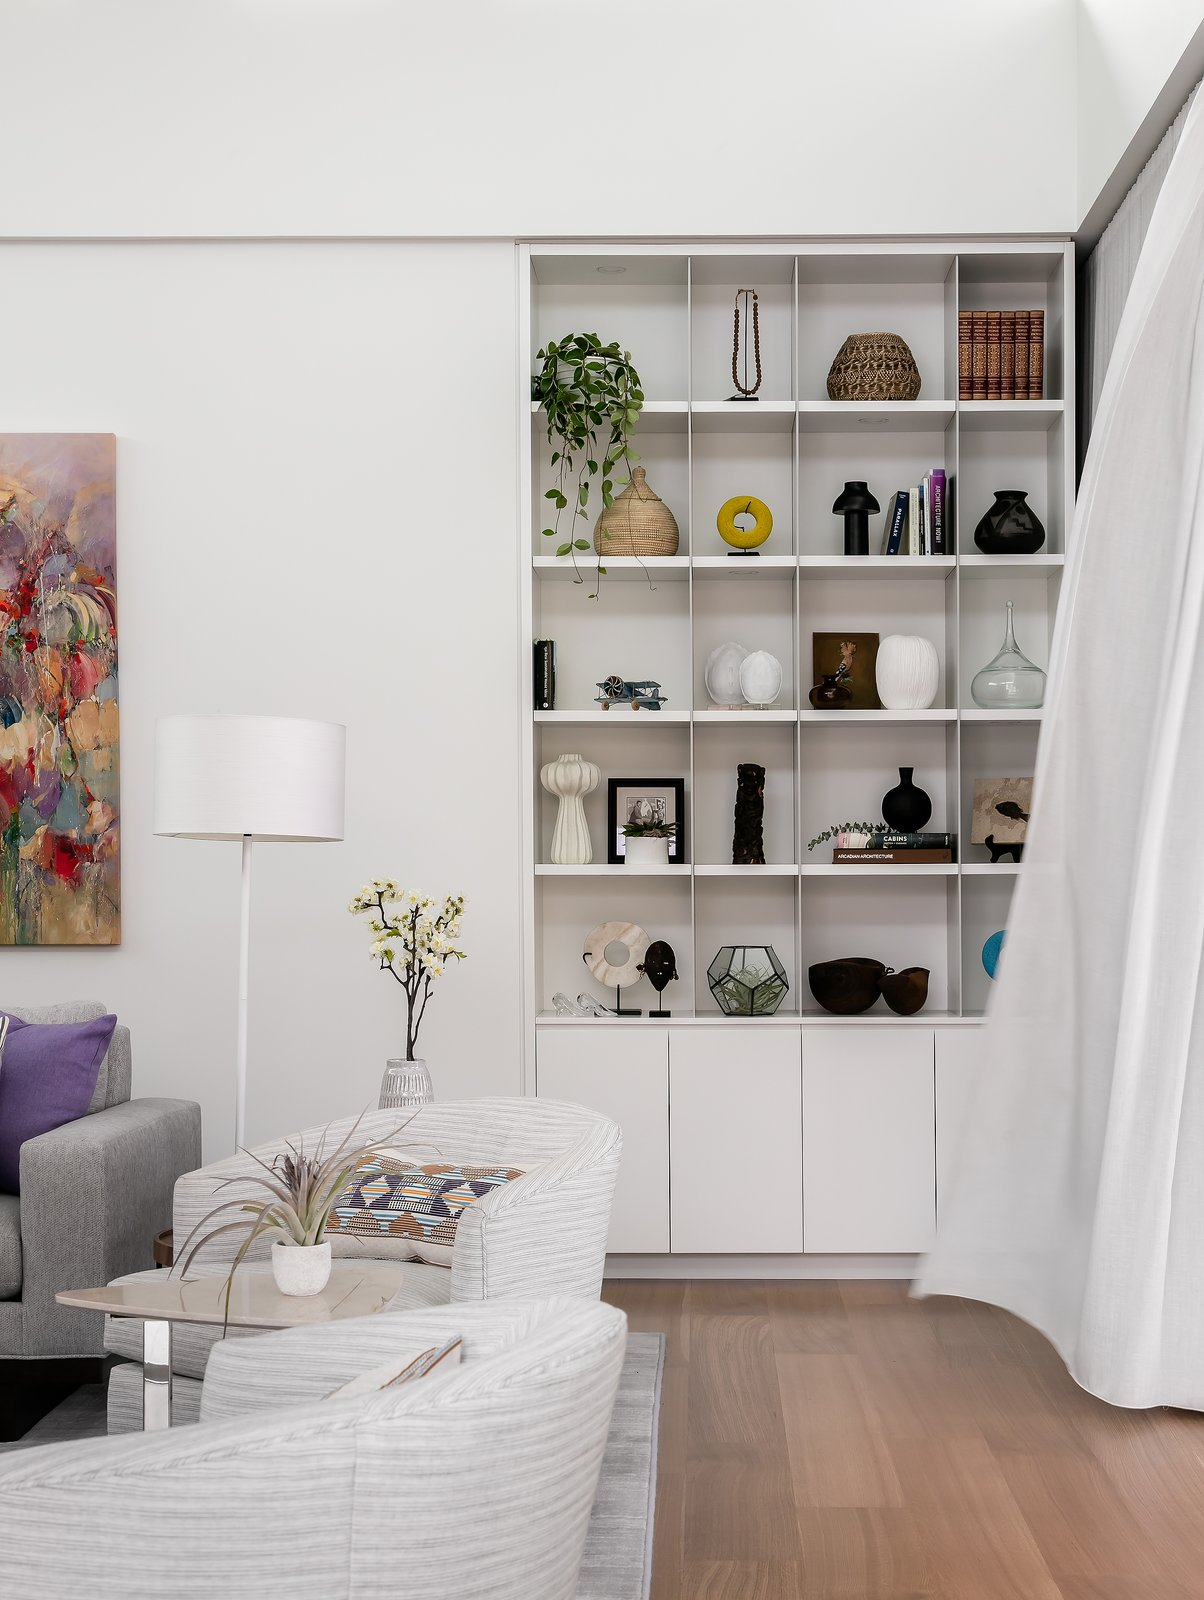 Living Room, Recessed Lighting, End Tables, Chair, Console Tables, Shelves, Medium Hardwood Floor, Storage, Ceiling Lighting, Lamps, Bookcase, and Accent Lighting  Bayview House by Leader Design Studio